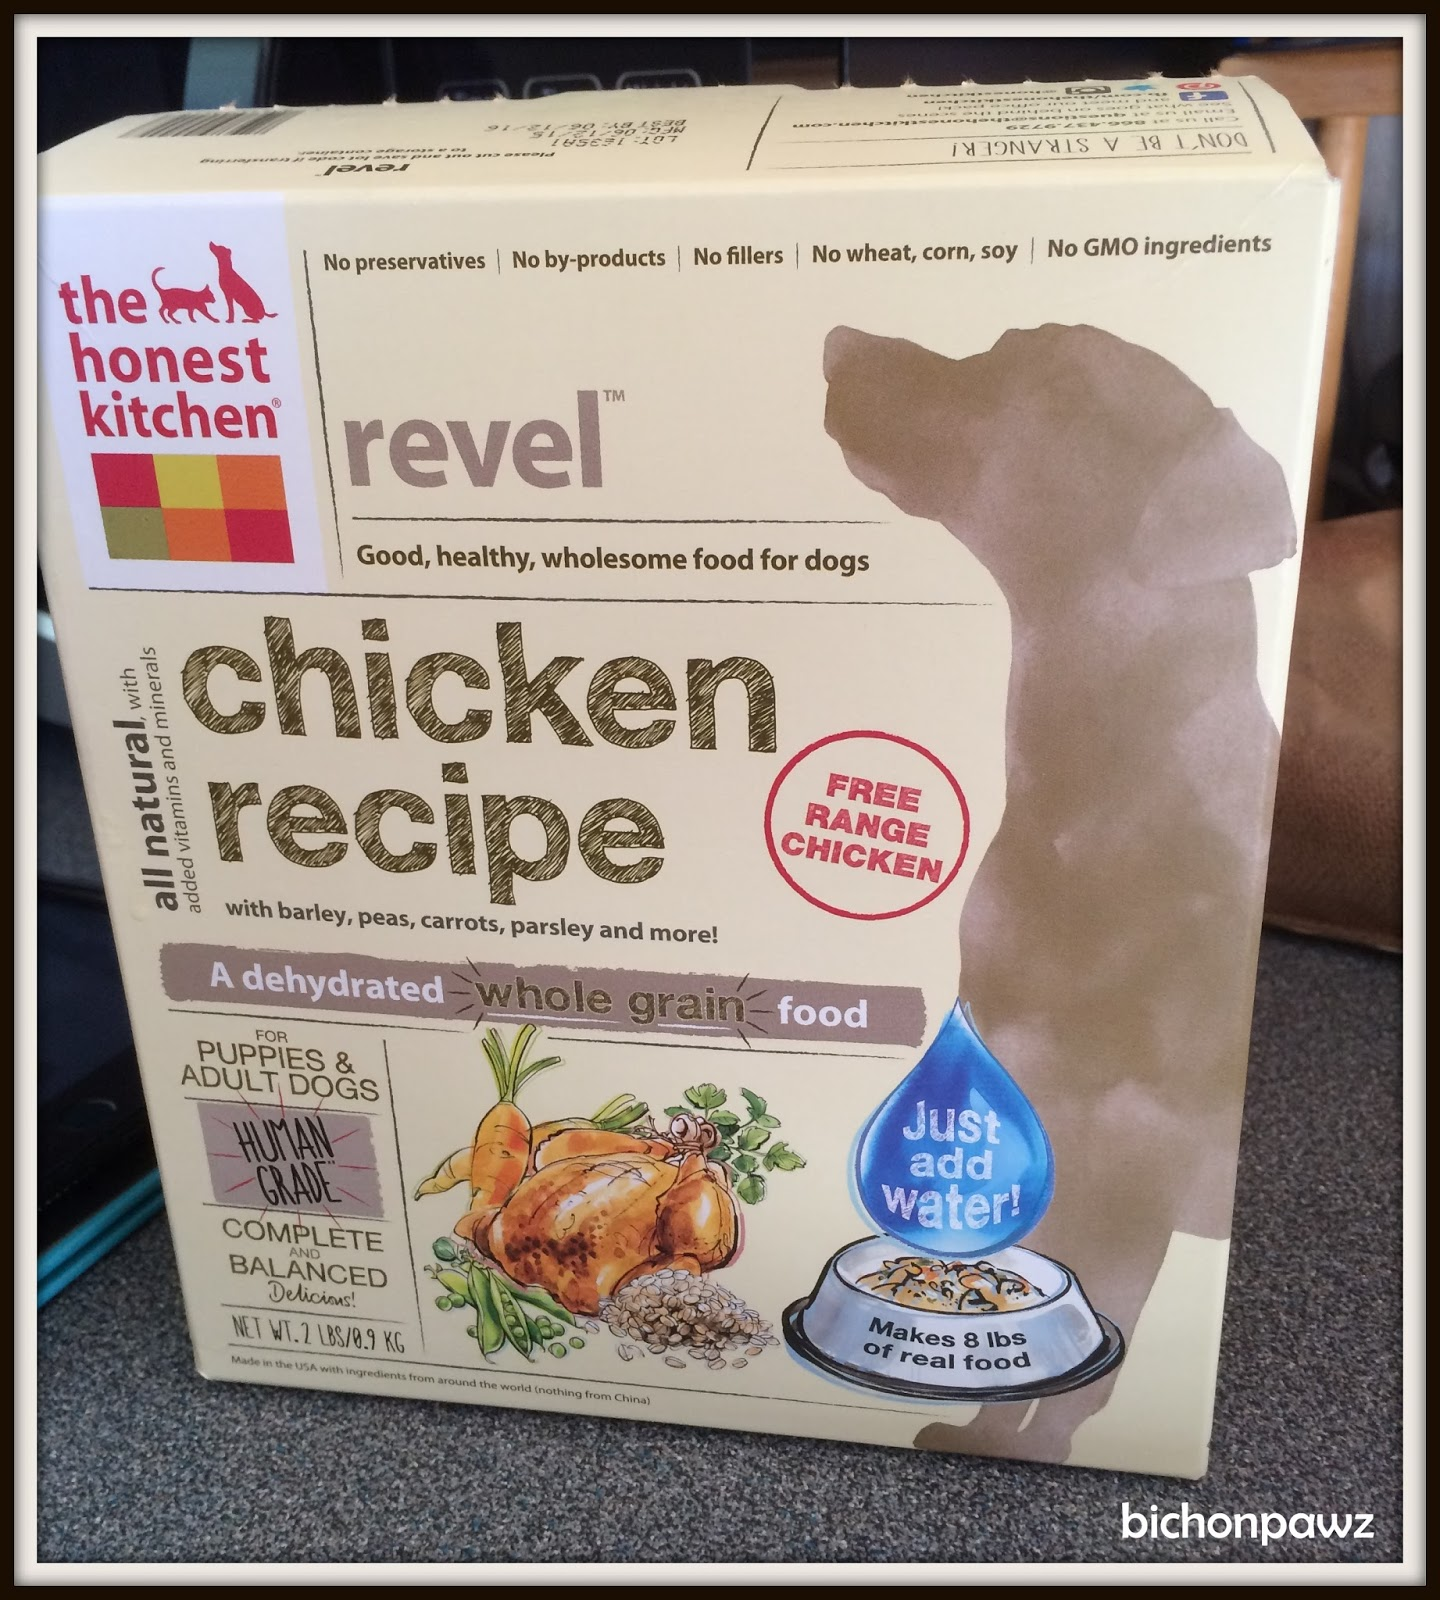 honest kitchen dog food reviews home depot cabinet hardware bichonpawz simply the best